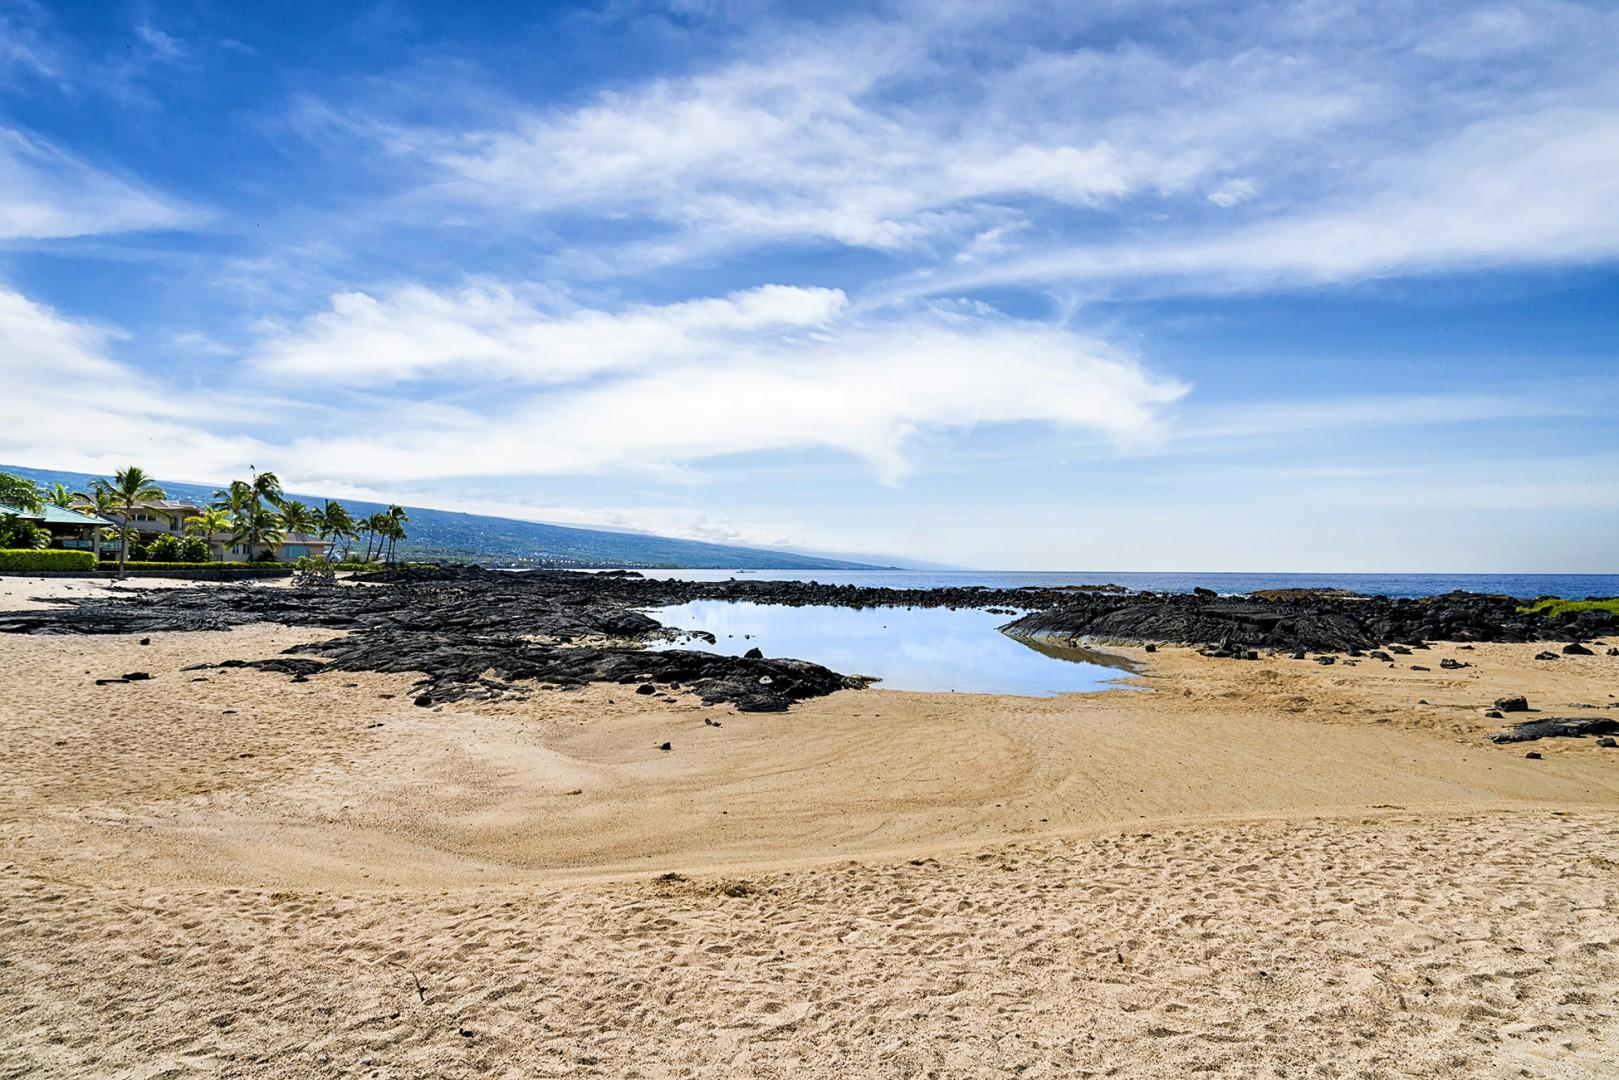 The famous Keiki Ponds beach is 5 minutes away on foot